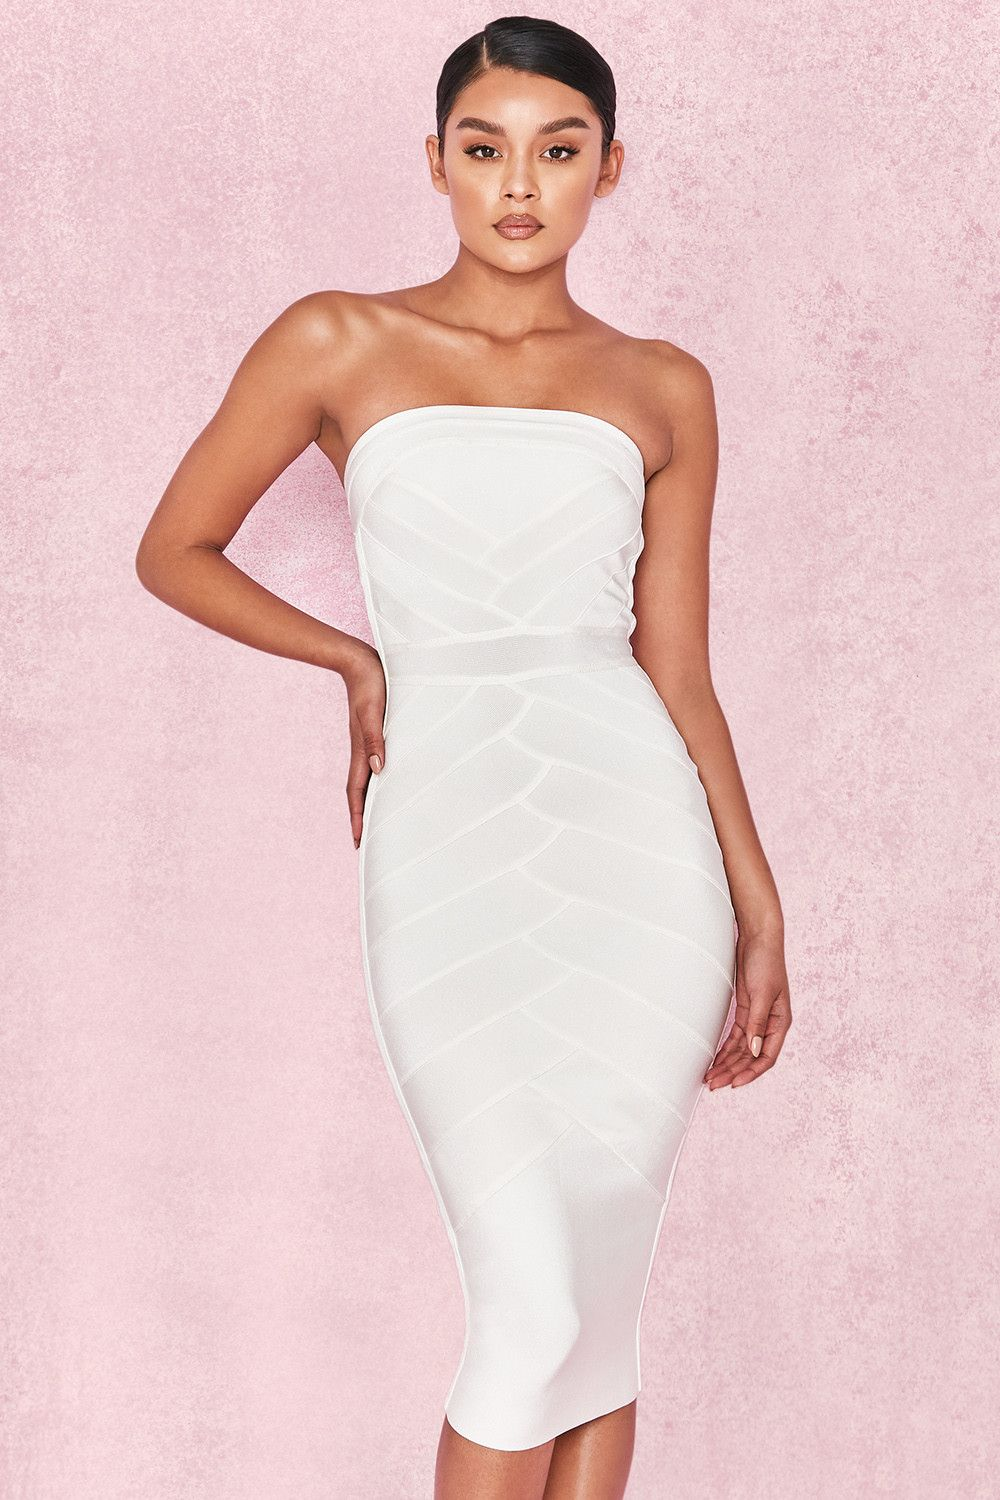 Clothing Bandage Dresses Amoura White Strapless Bandage Midi Dress Strappless Dresses Bandage Midi Dress Dresses